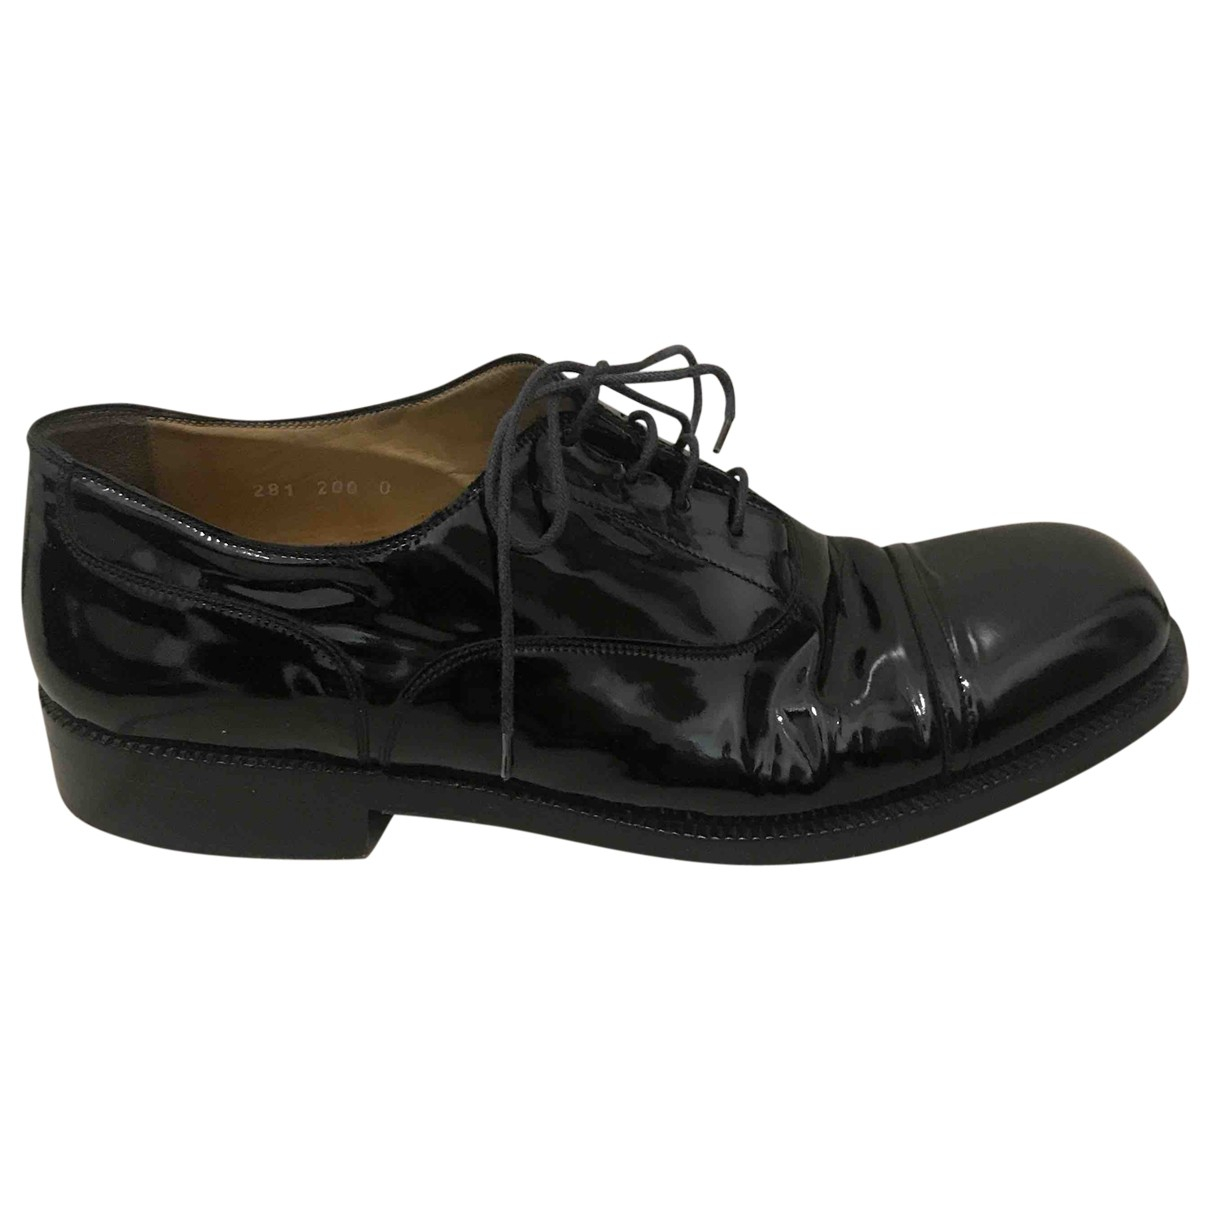 Giorgio Armani \N Black Patent leather Lace ups for Men 10 US